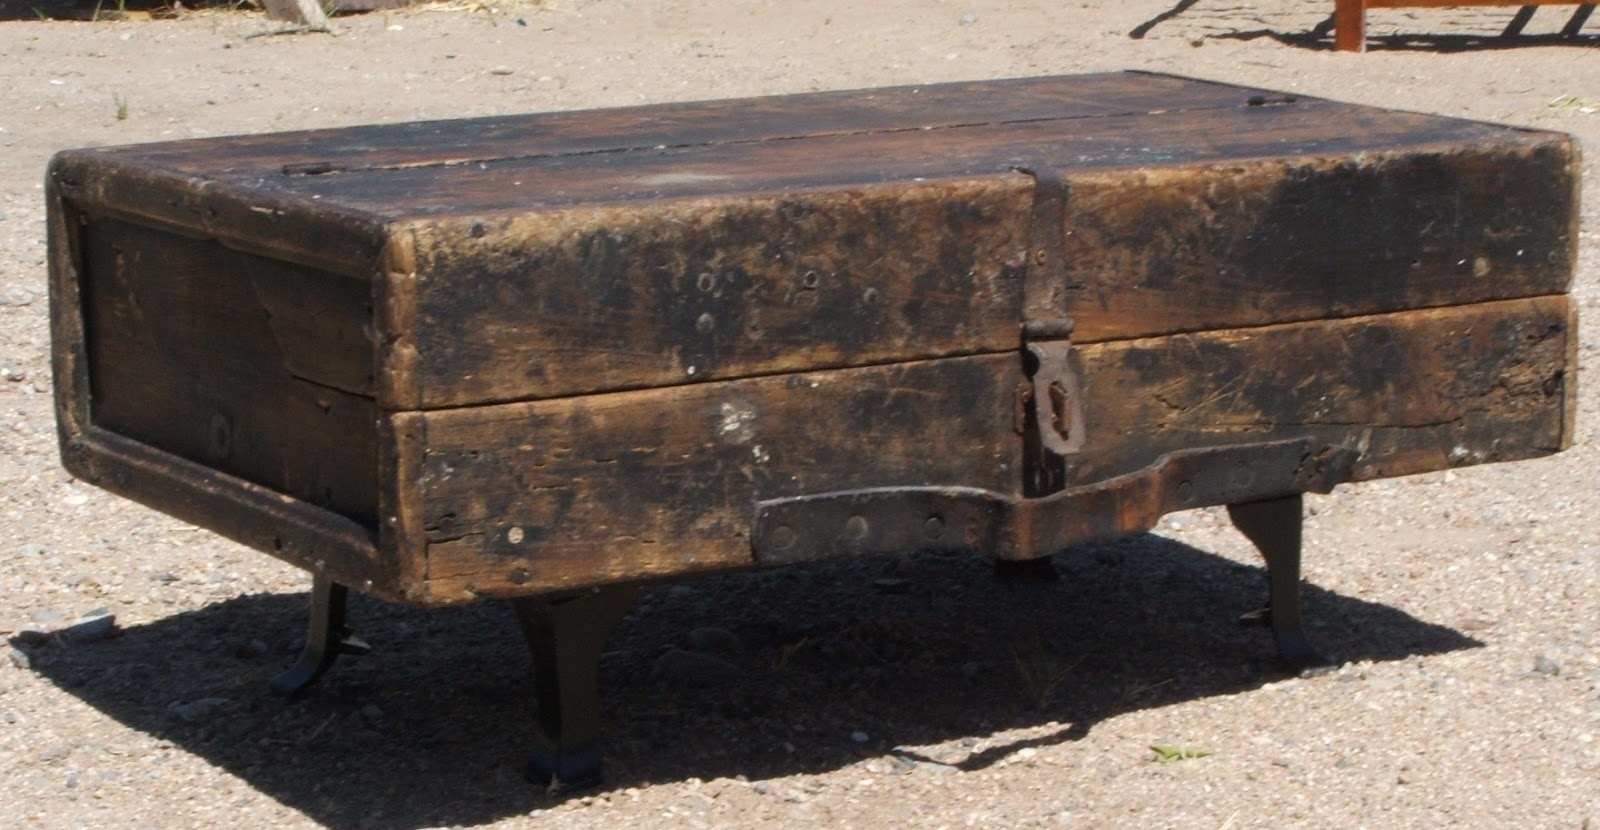 Vintage Carpenter's Chest - Trunk - Toolbox - Antique